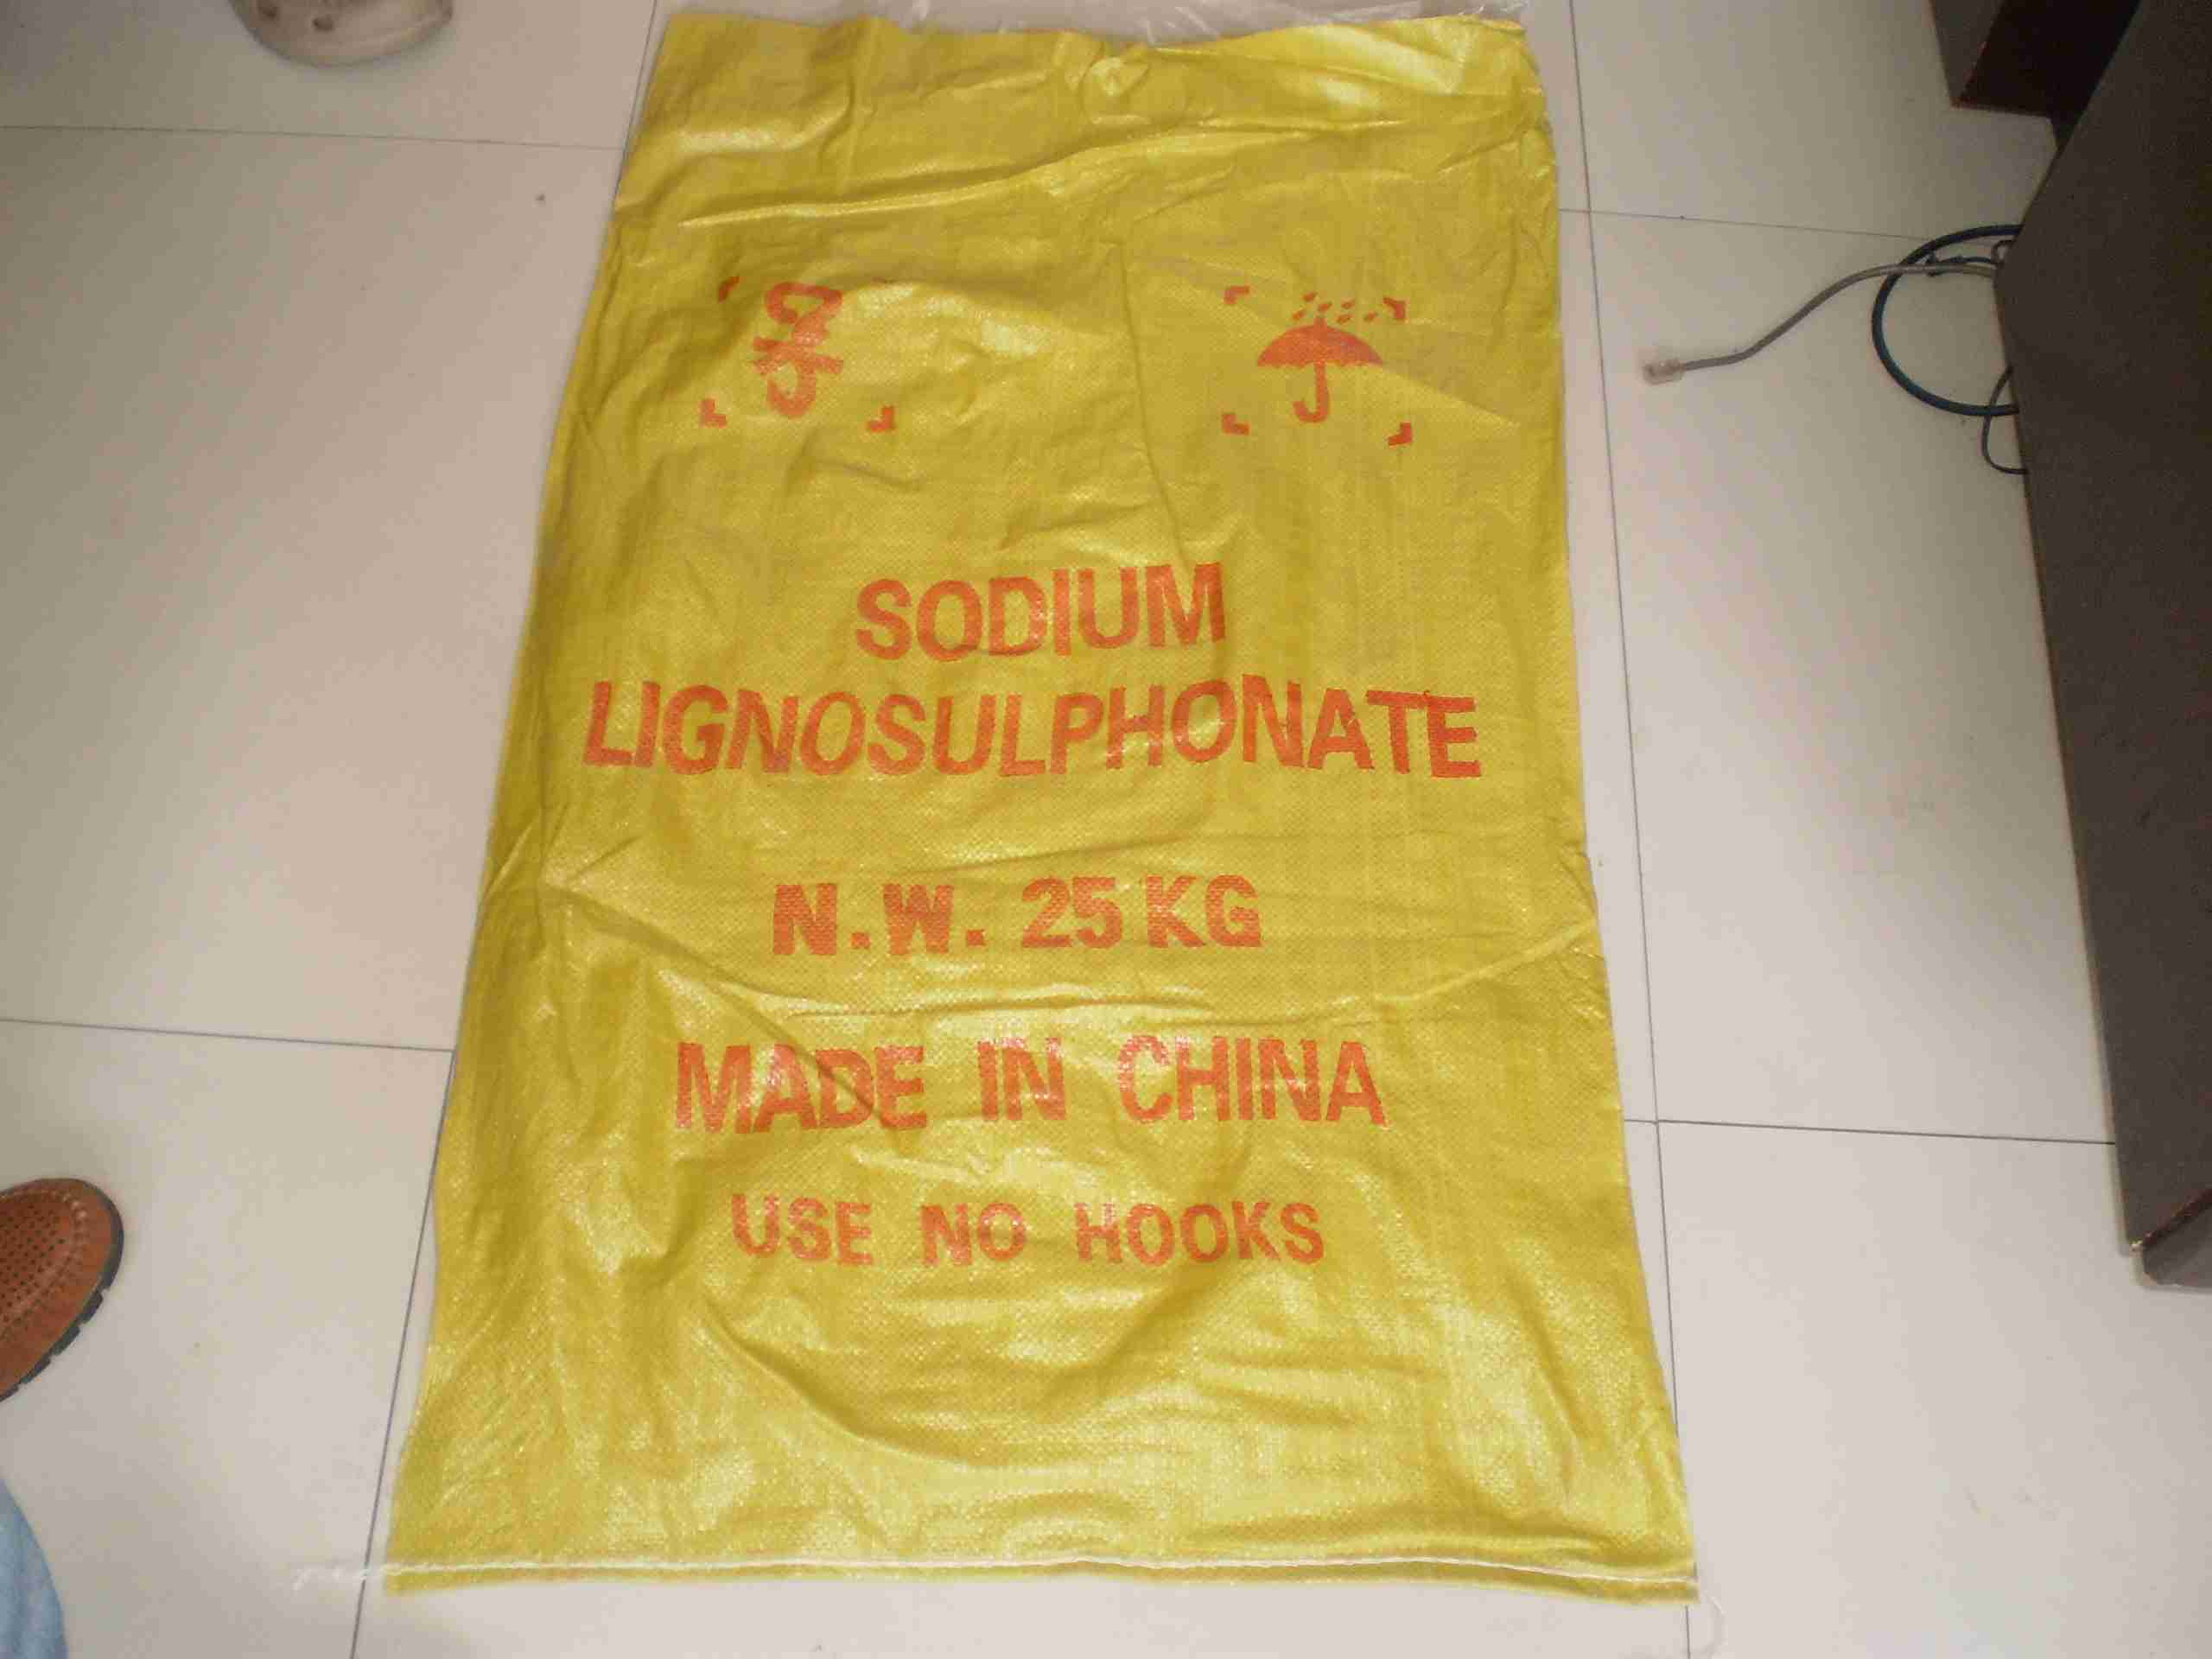 SODIUM LIGNOSULFONATE PACKAGE